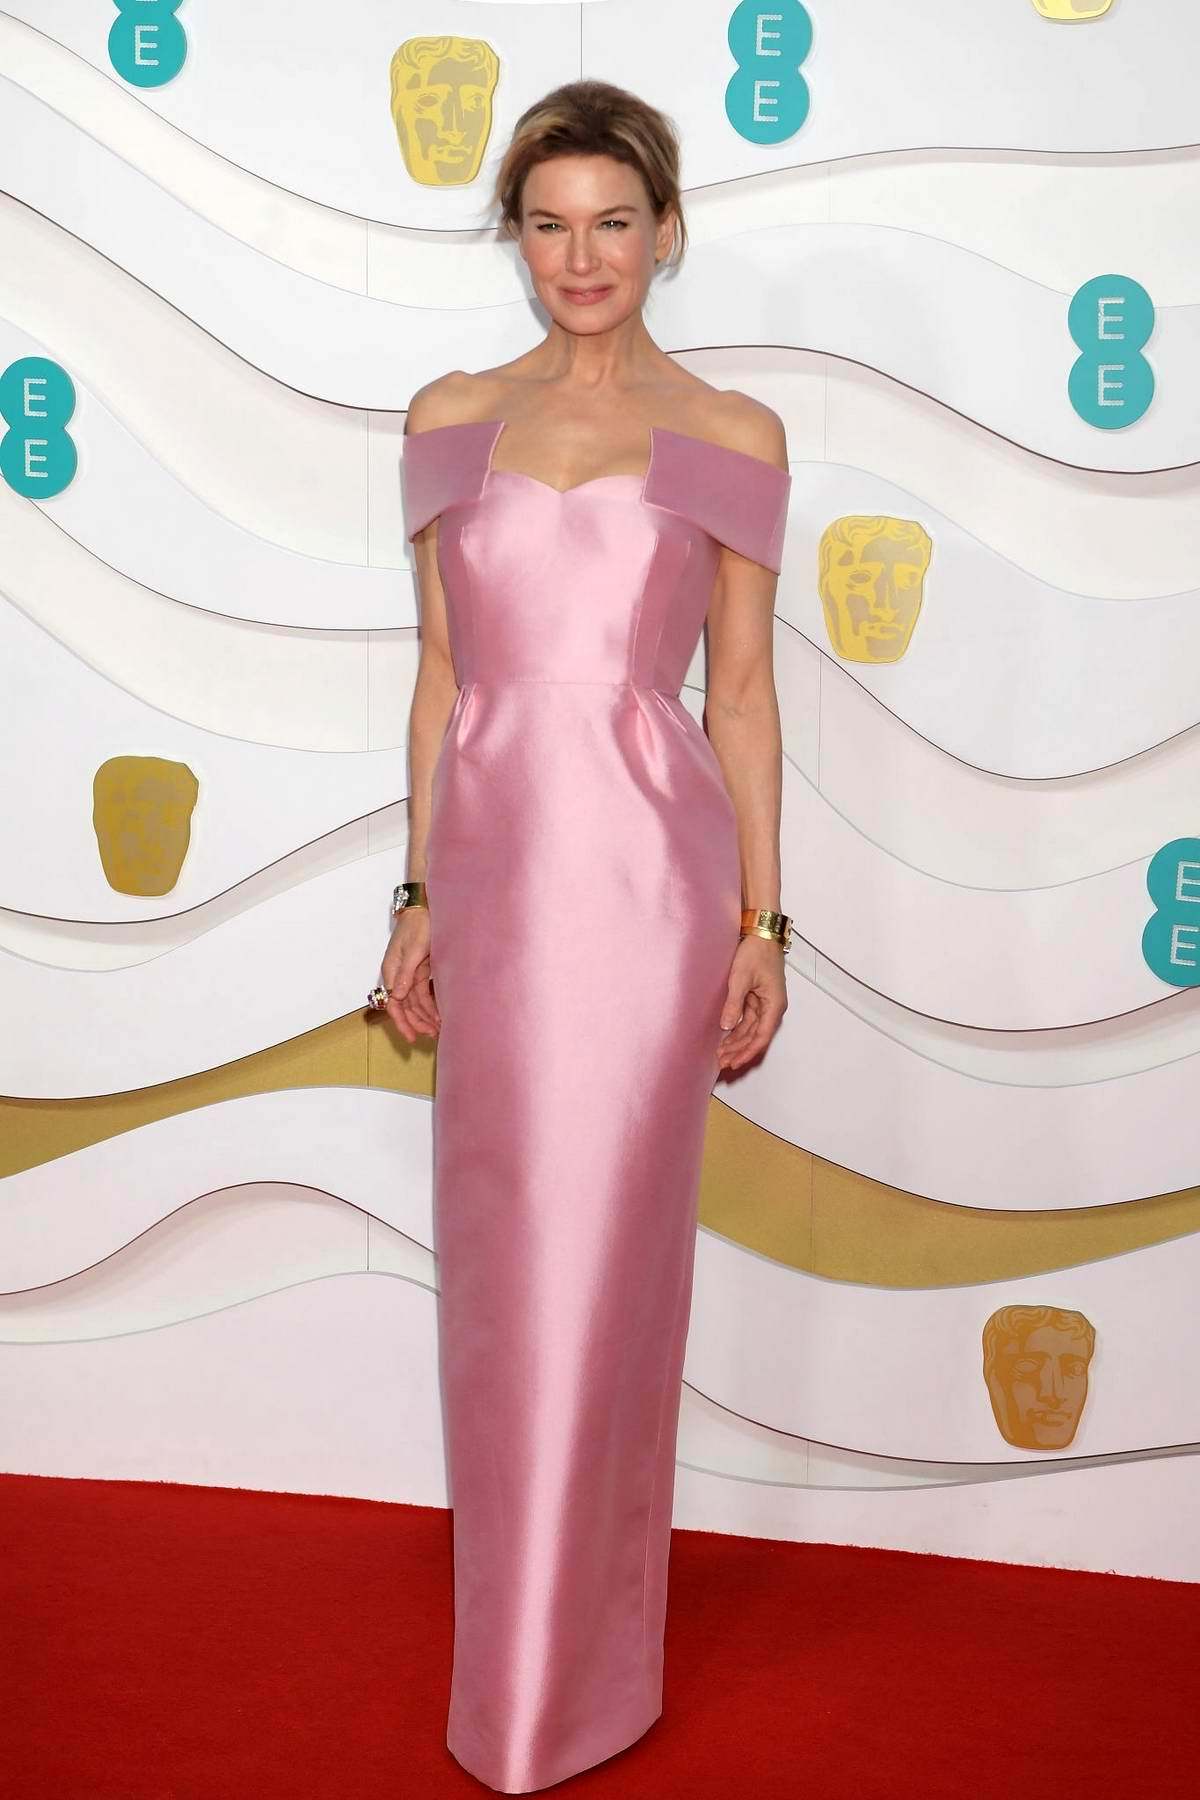 Renee Zellweger attends the 73rd EE British Academy Film Awards at Royal Albert Hall in London, UK